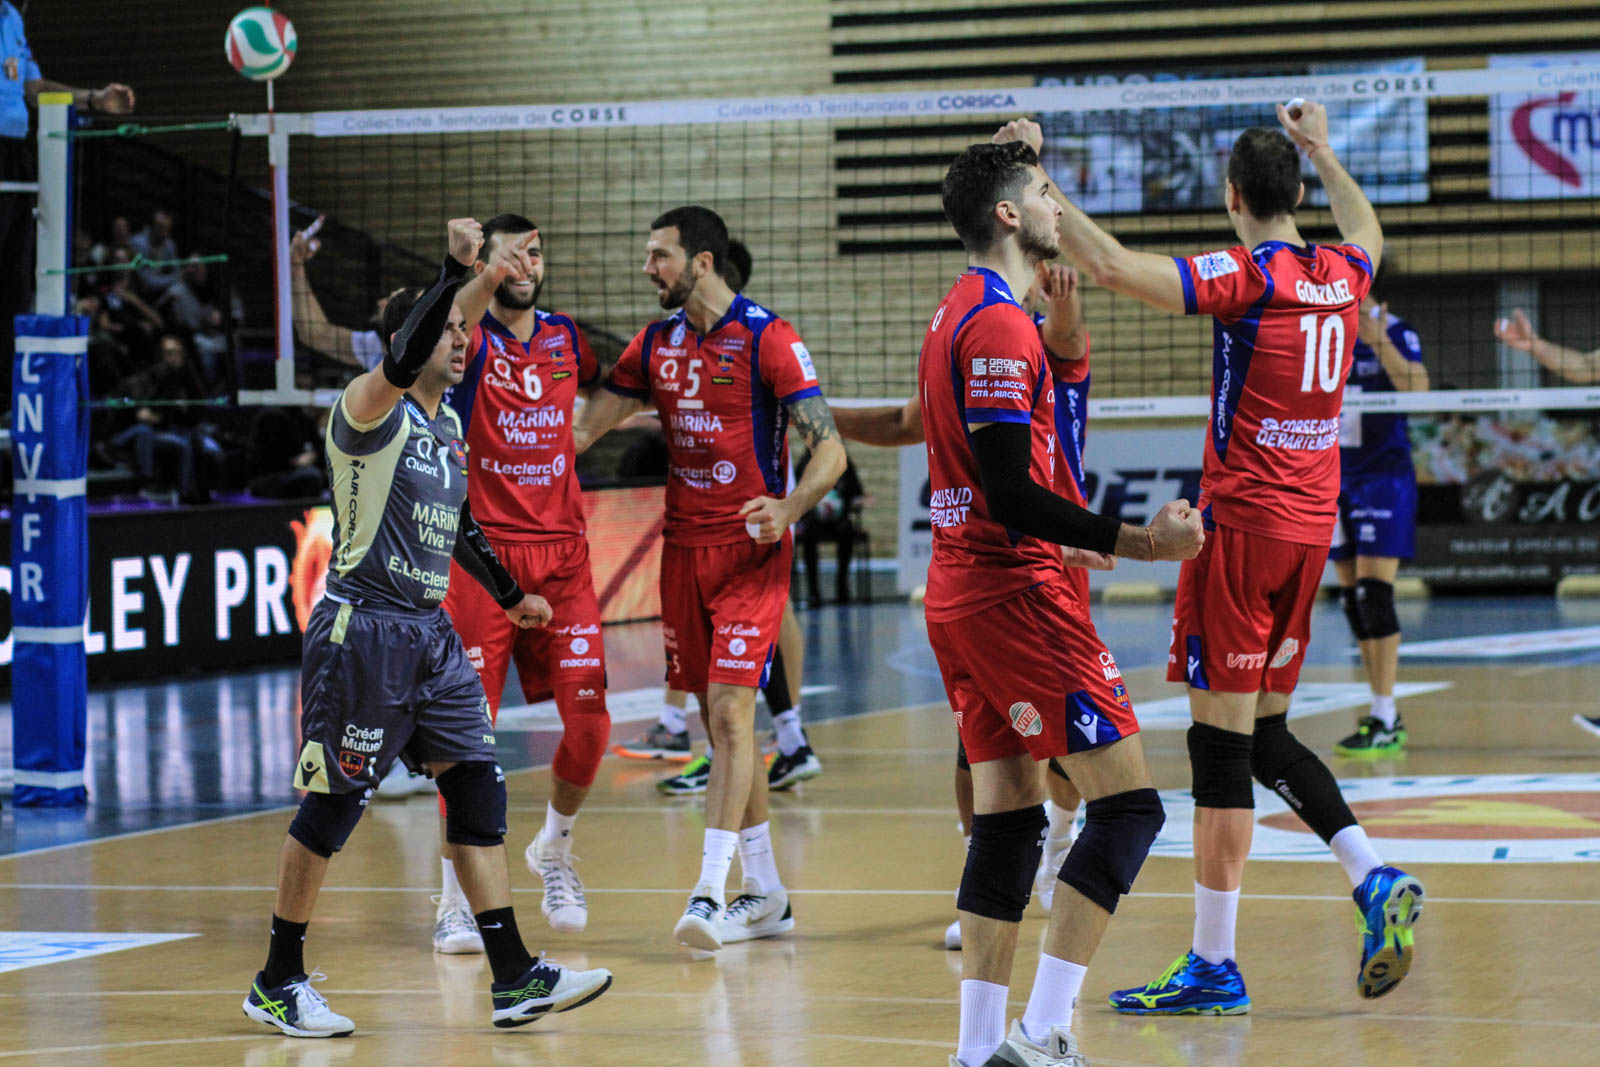 Ligue A : Le GFCA domine Montpellier (3 sets à 1)